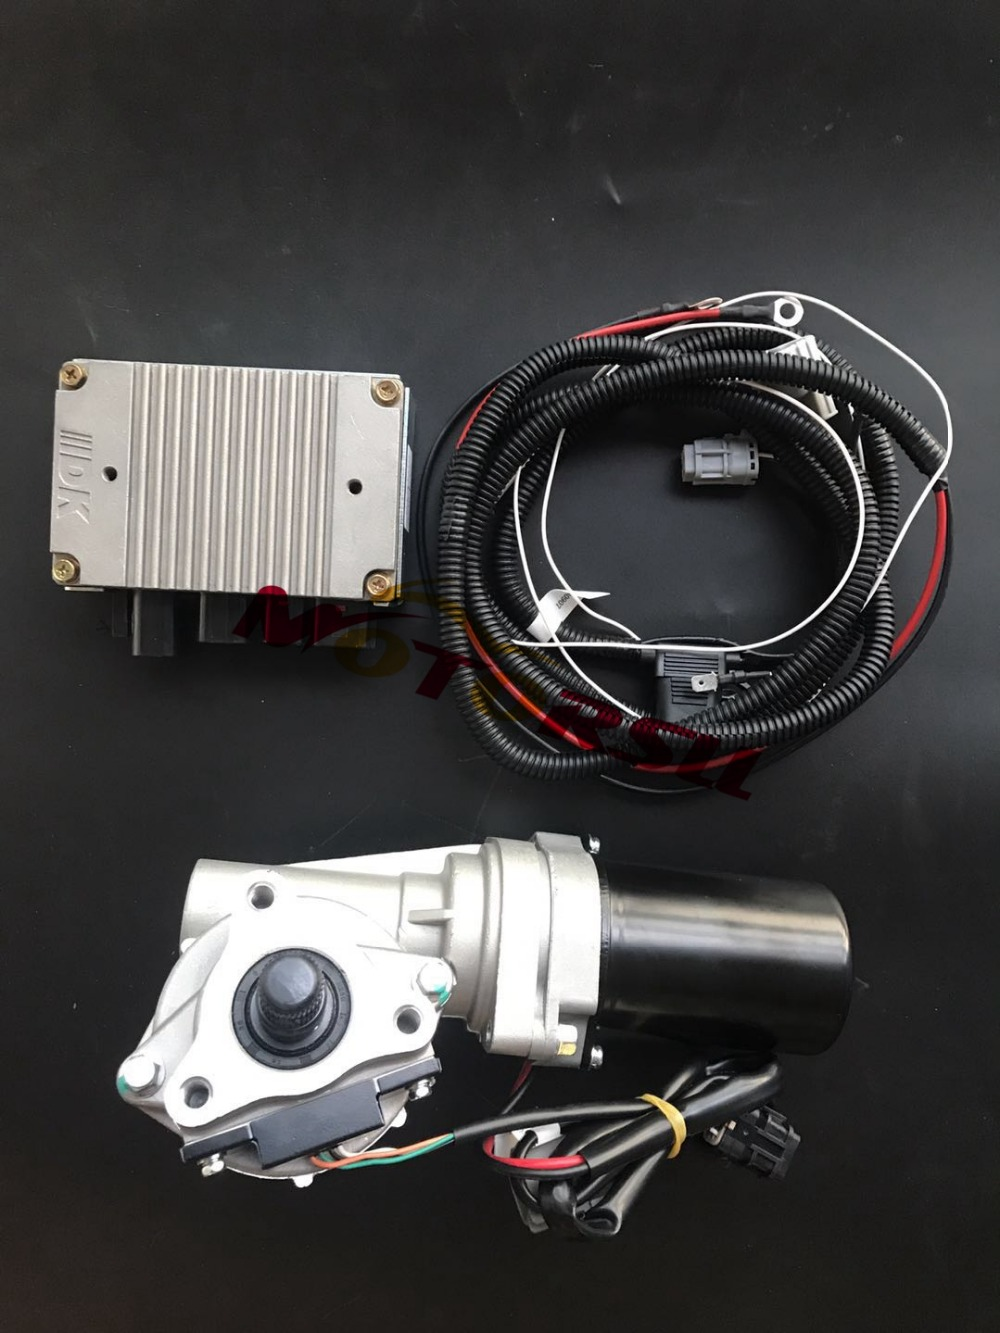 ELECTRIC POWER STEERING EPS CONTROLLER FOR UTV Universal CF800 u8 CF moto zforce550 u550 UFORCE800 9060